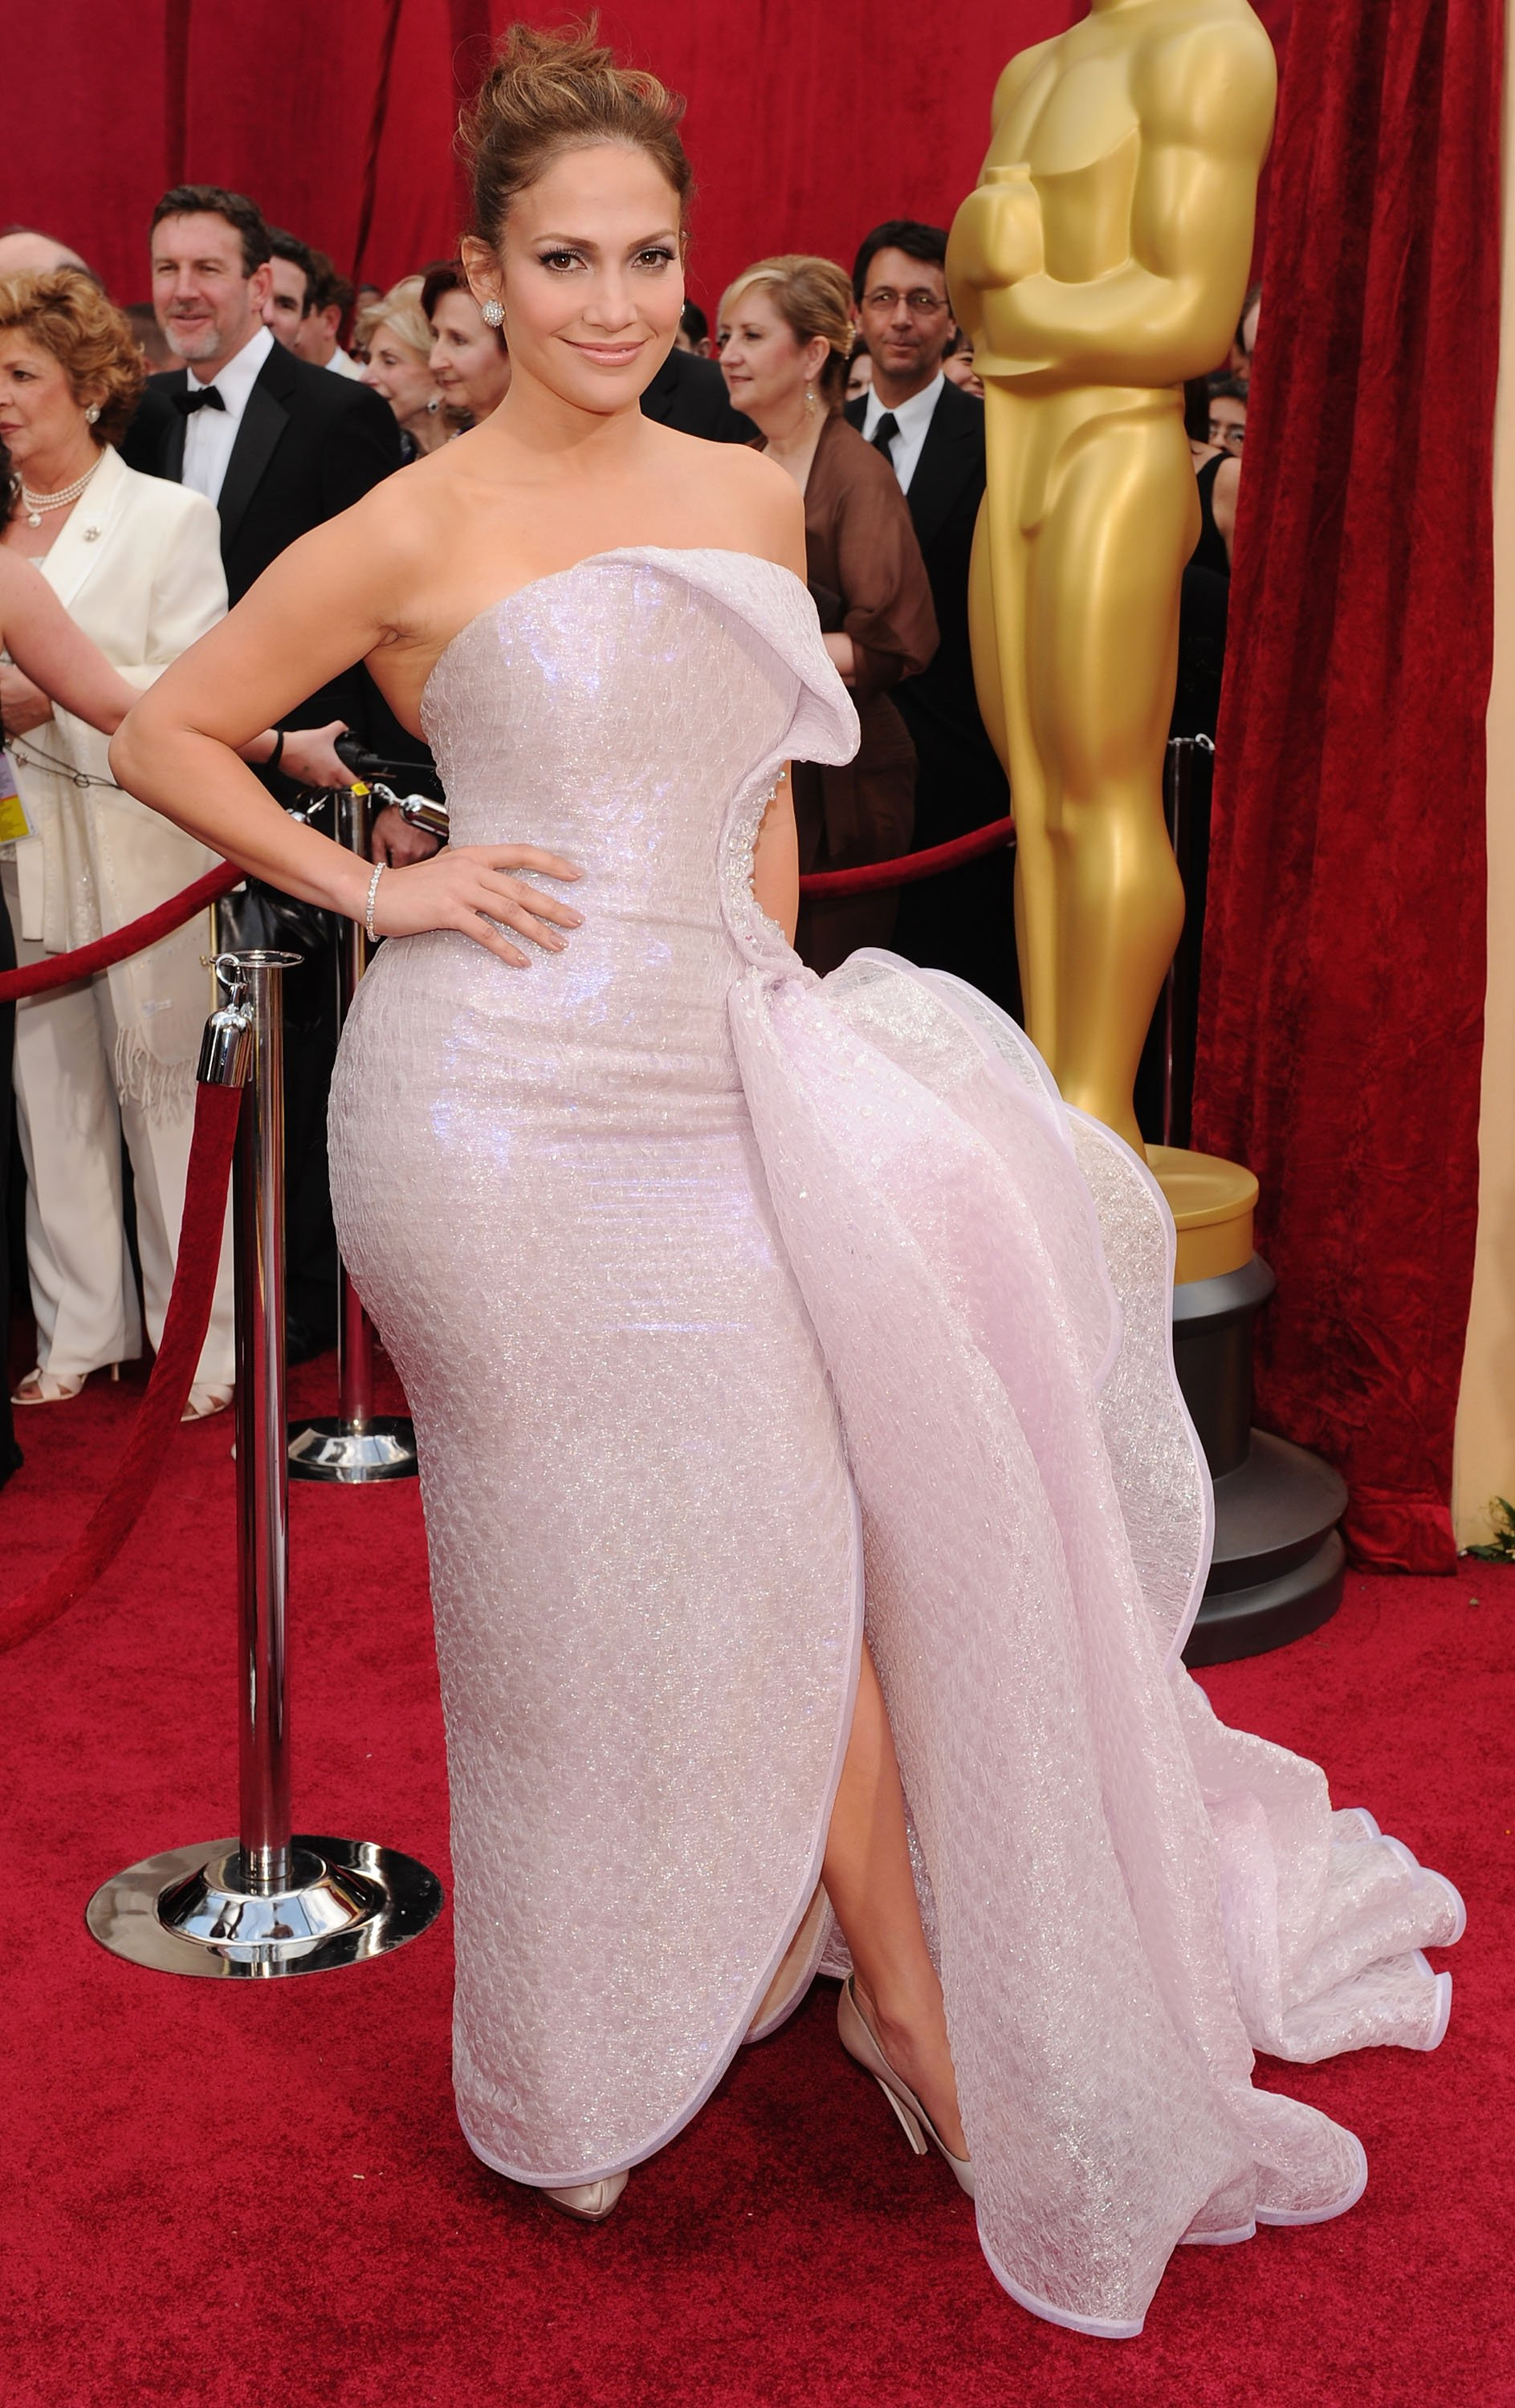 Jennifer Lopez pictured at the 82nd Annual Academy Awards, 2010, California.   Photo: Getty Images